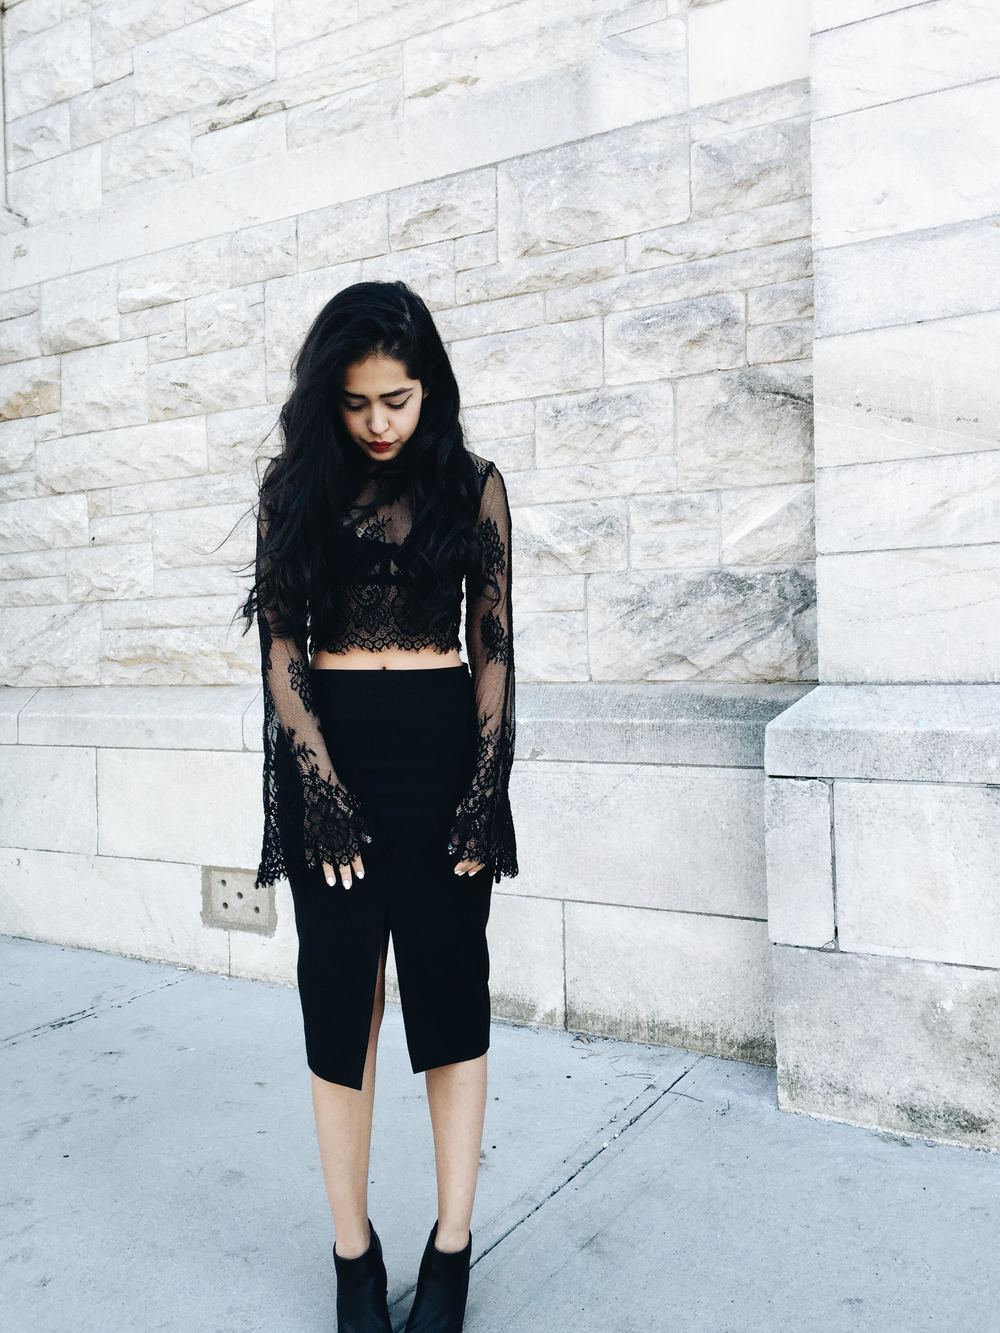 arushi.co, arushi khosla, black lace crop top, nasty gal, pencil skirt, aritzia, steve madden, black ankle boots, white nails